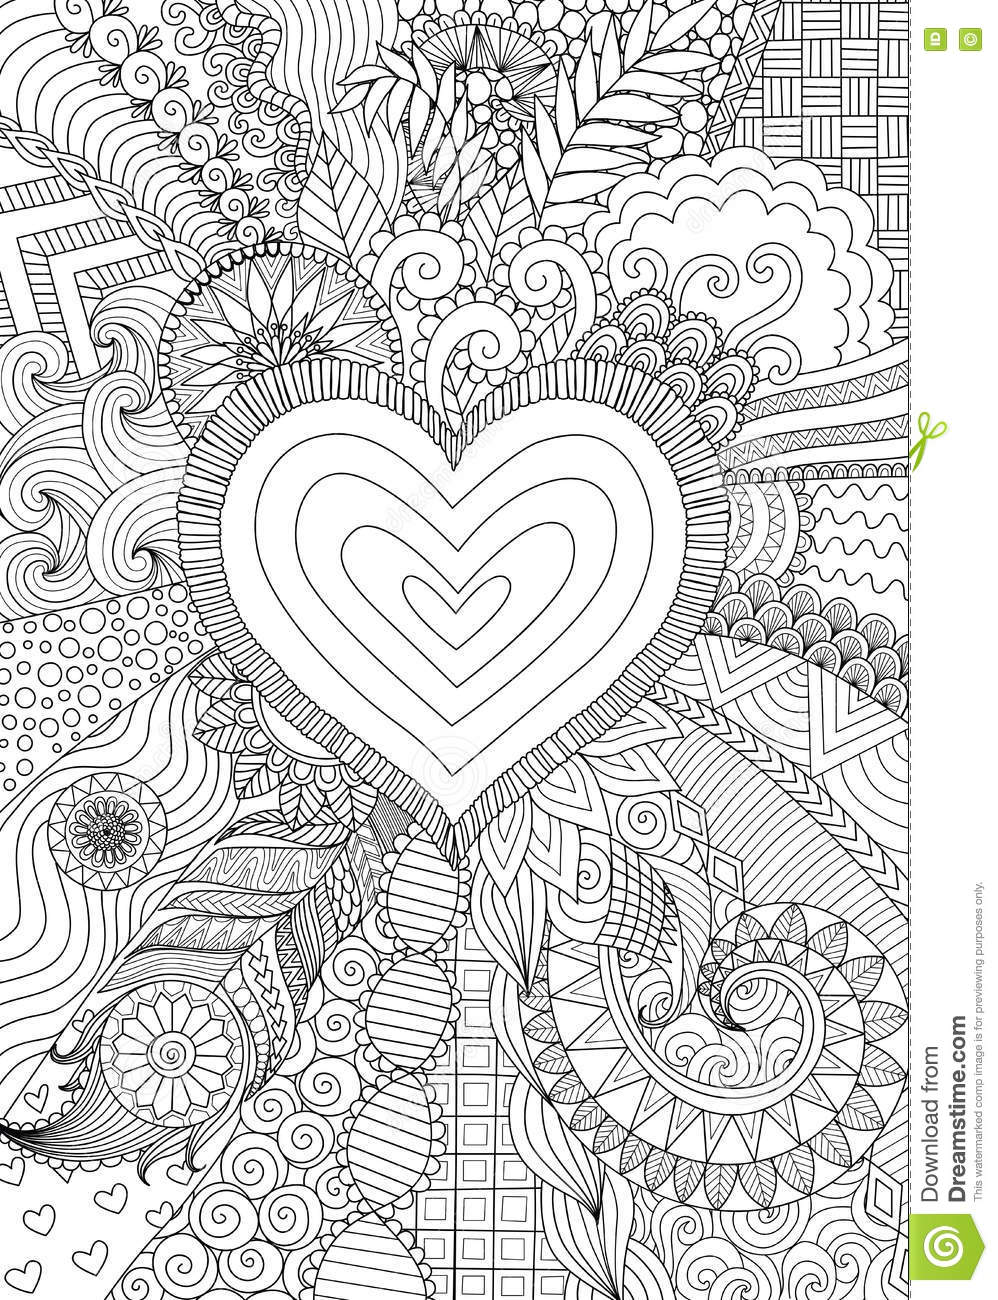 Line Art Media Design : Zendoodle design of heart shape on abstract line art